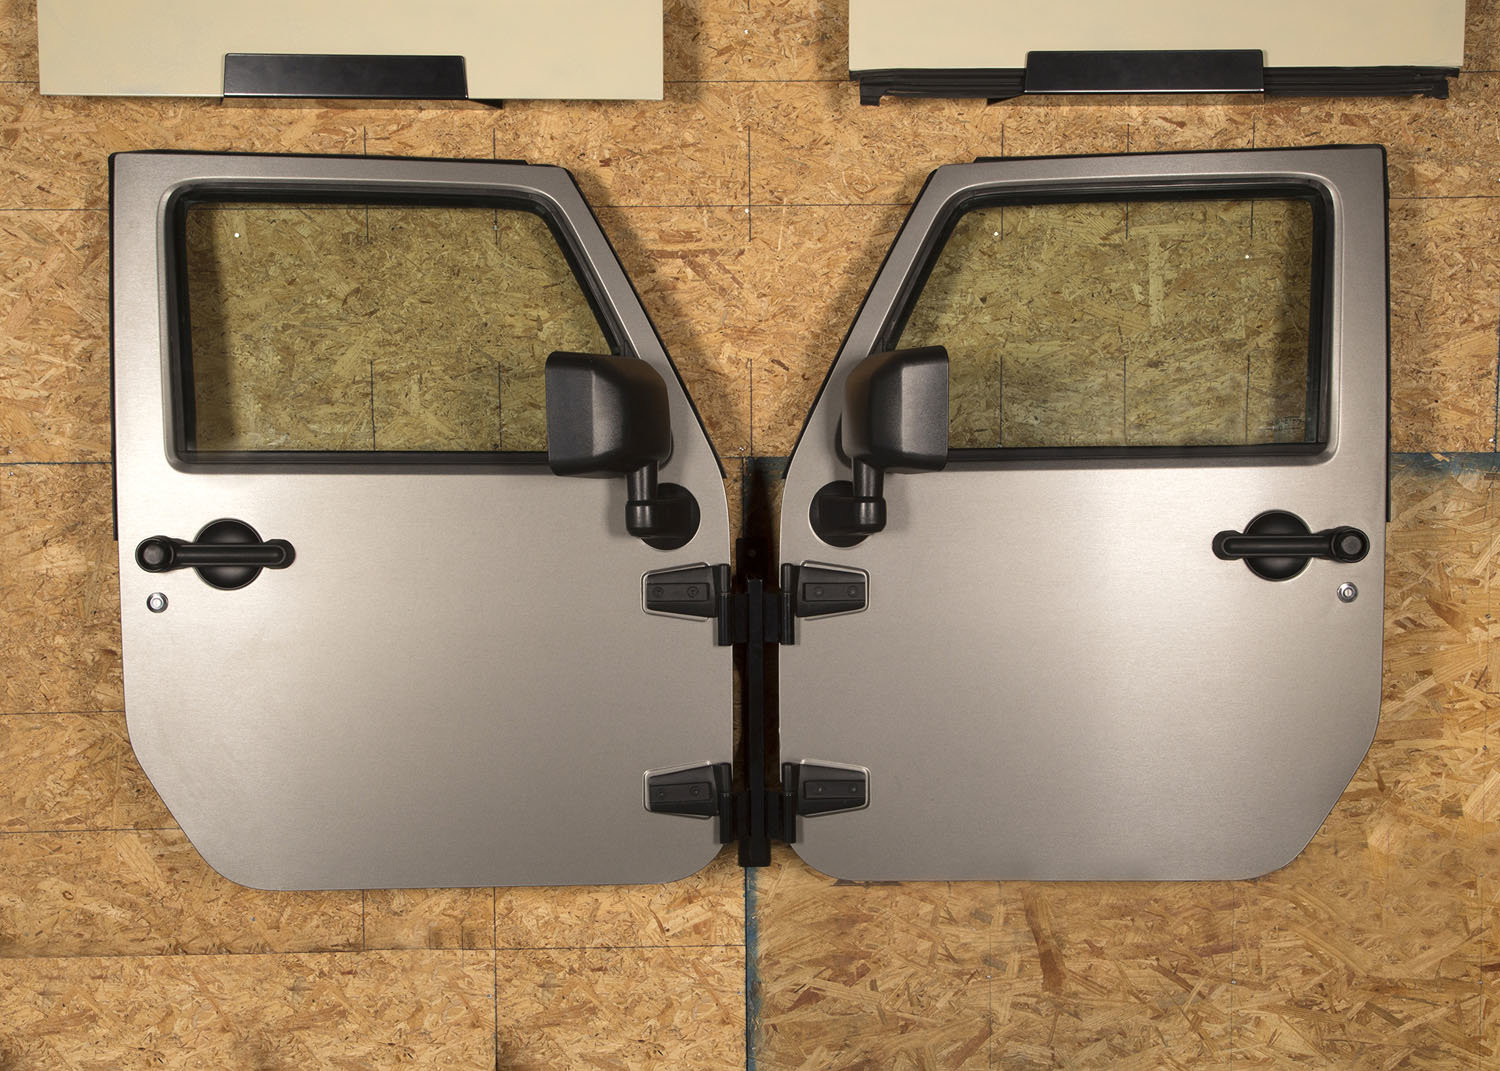 Jeep Door View Choose Your Wrangler Jl 2018 Up Parts Rugged Ridge Wall Mount Holders Unlimited